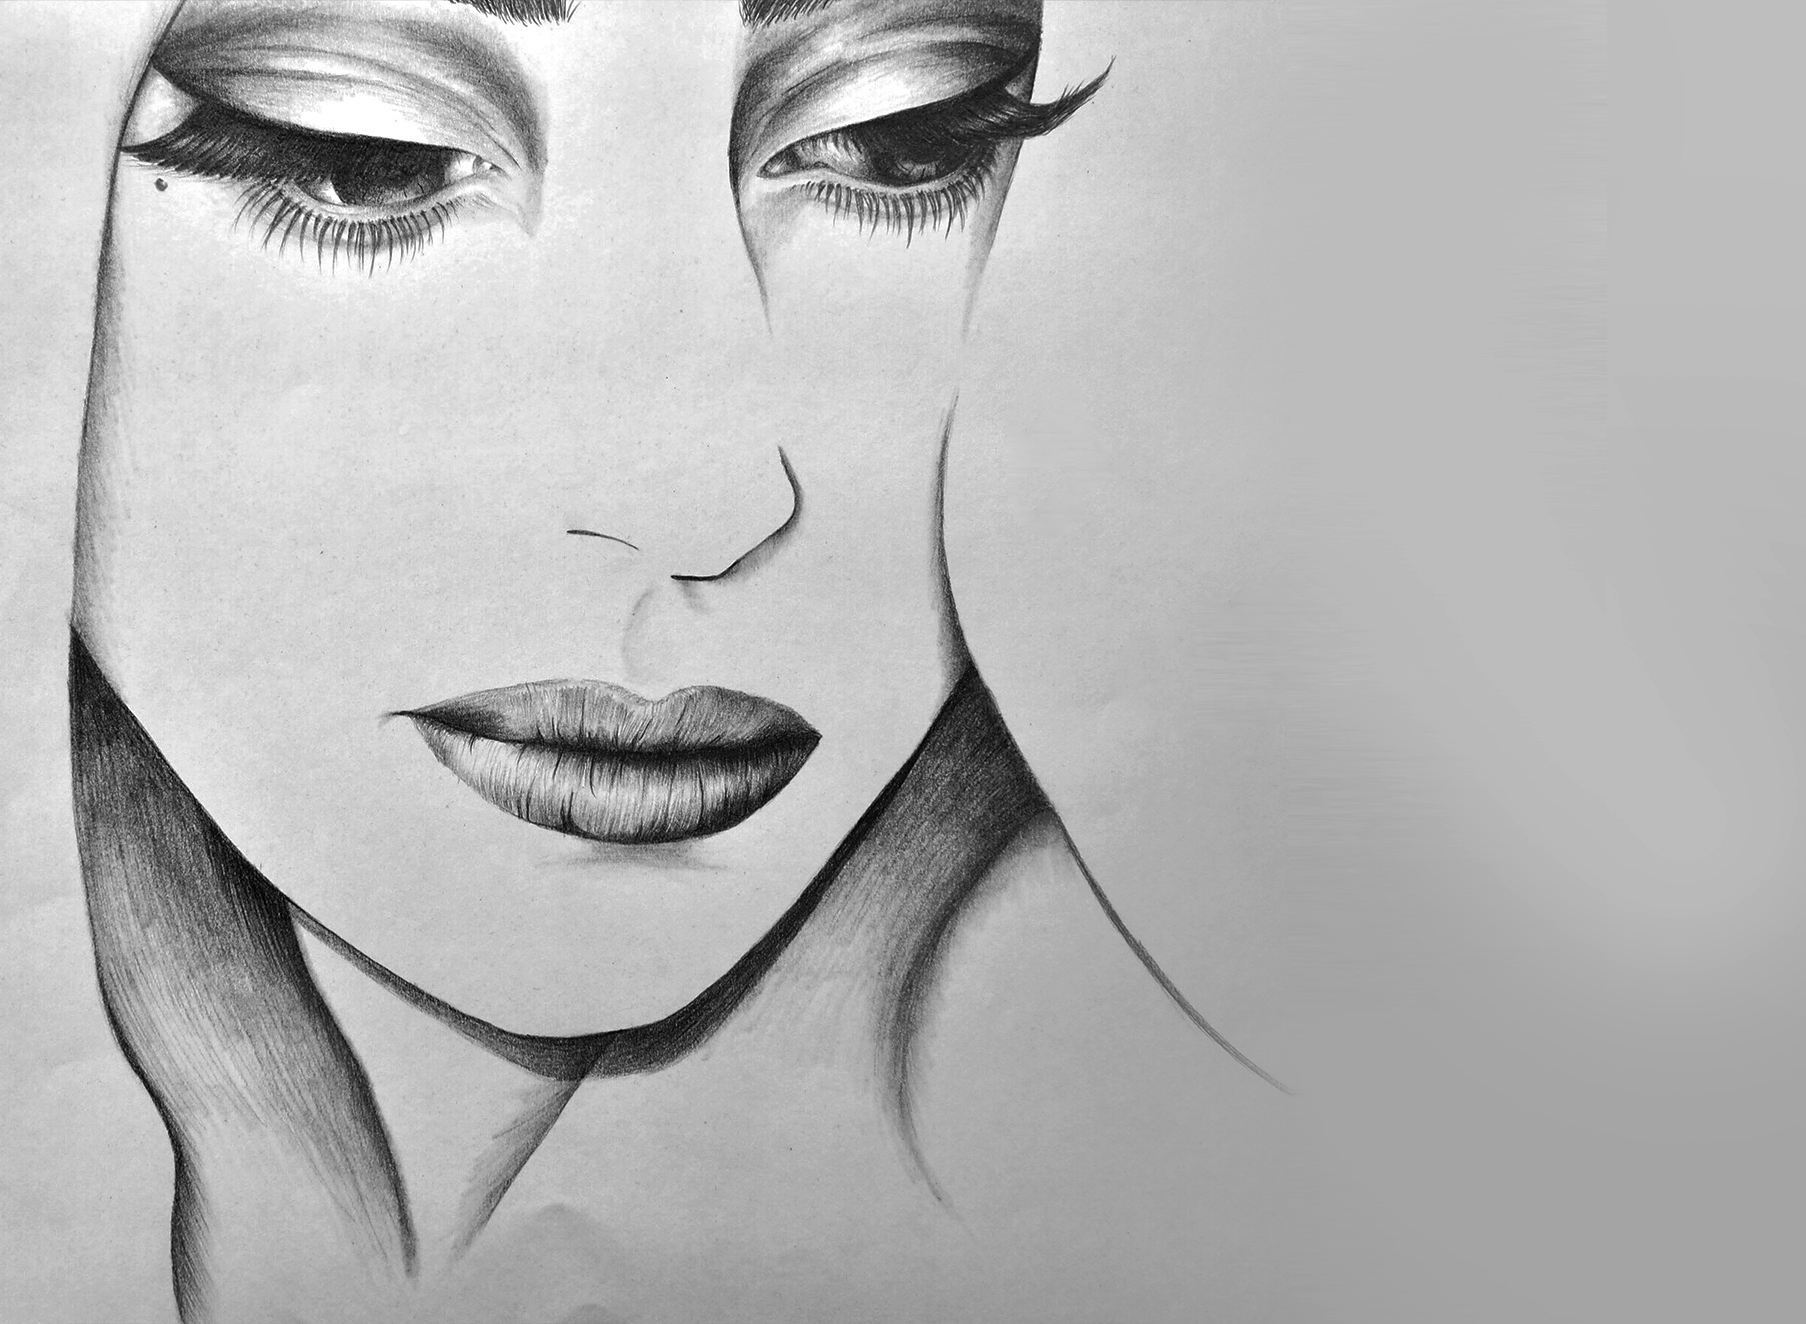 Pencil Drawing 2 - Illustration - Folio